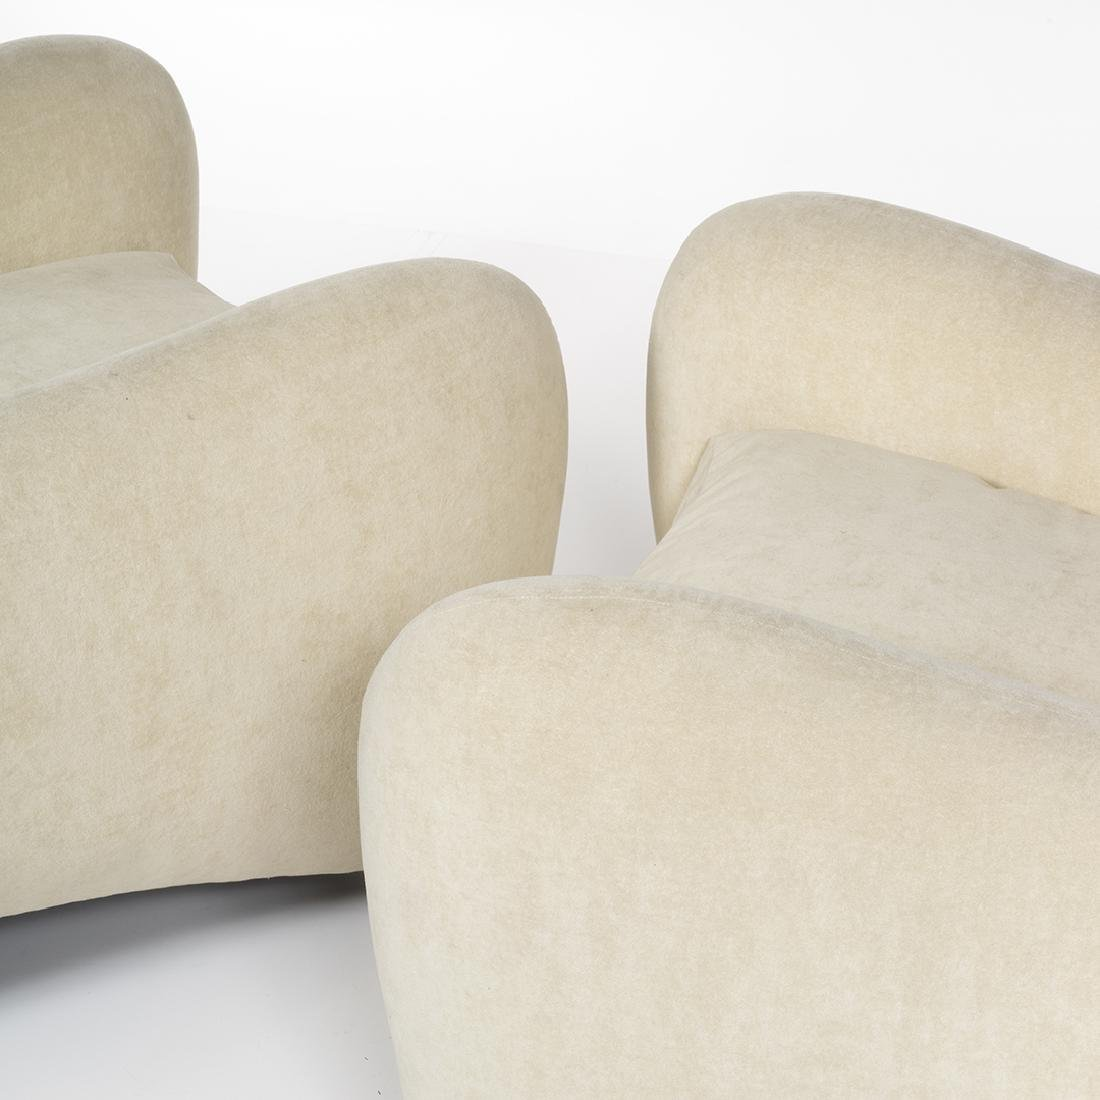 Matthew Hilton Balzac Chairs (2) - 4